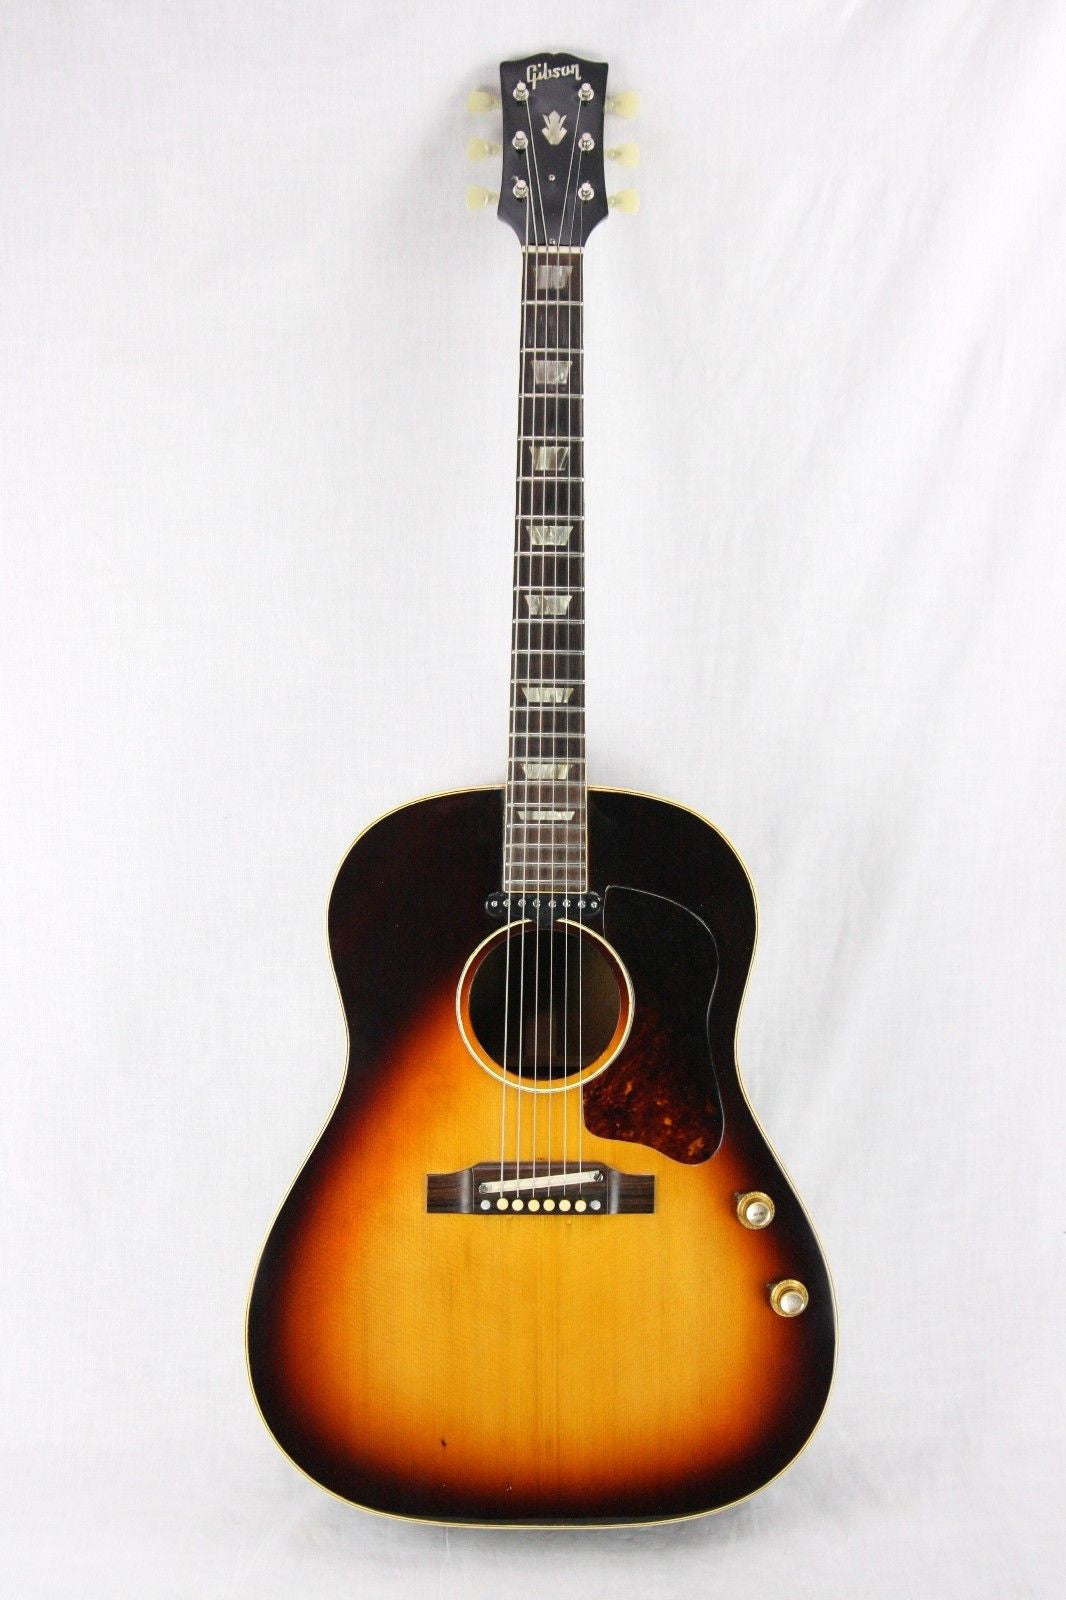 1962 Gibson J-160E Restored Vintage Guitar! Same year as John Lennon! REAL THING